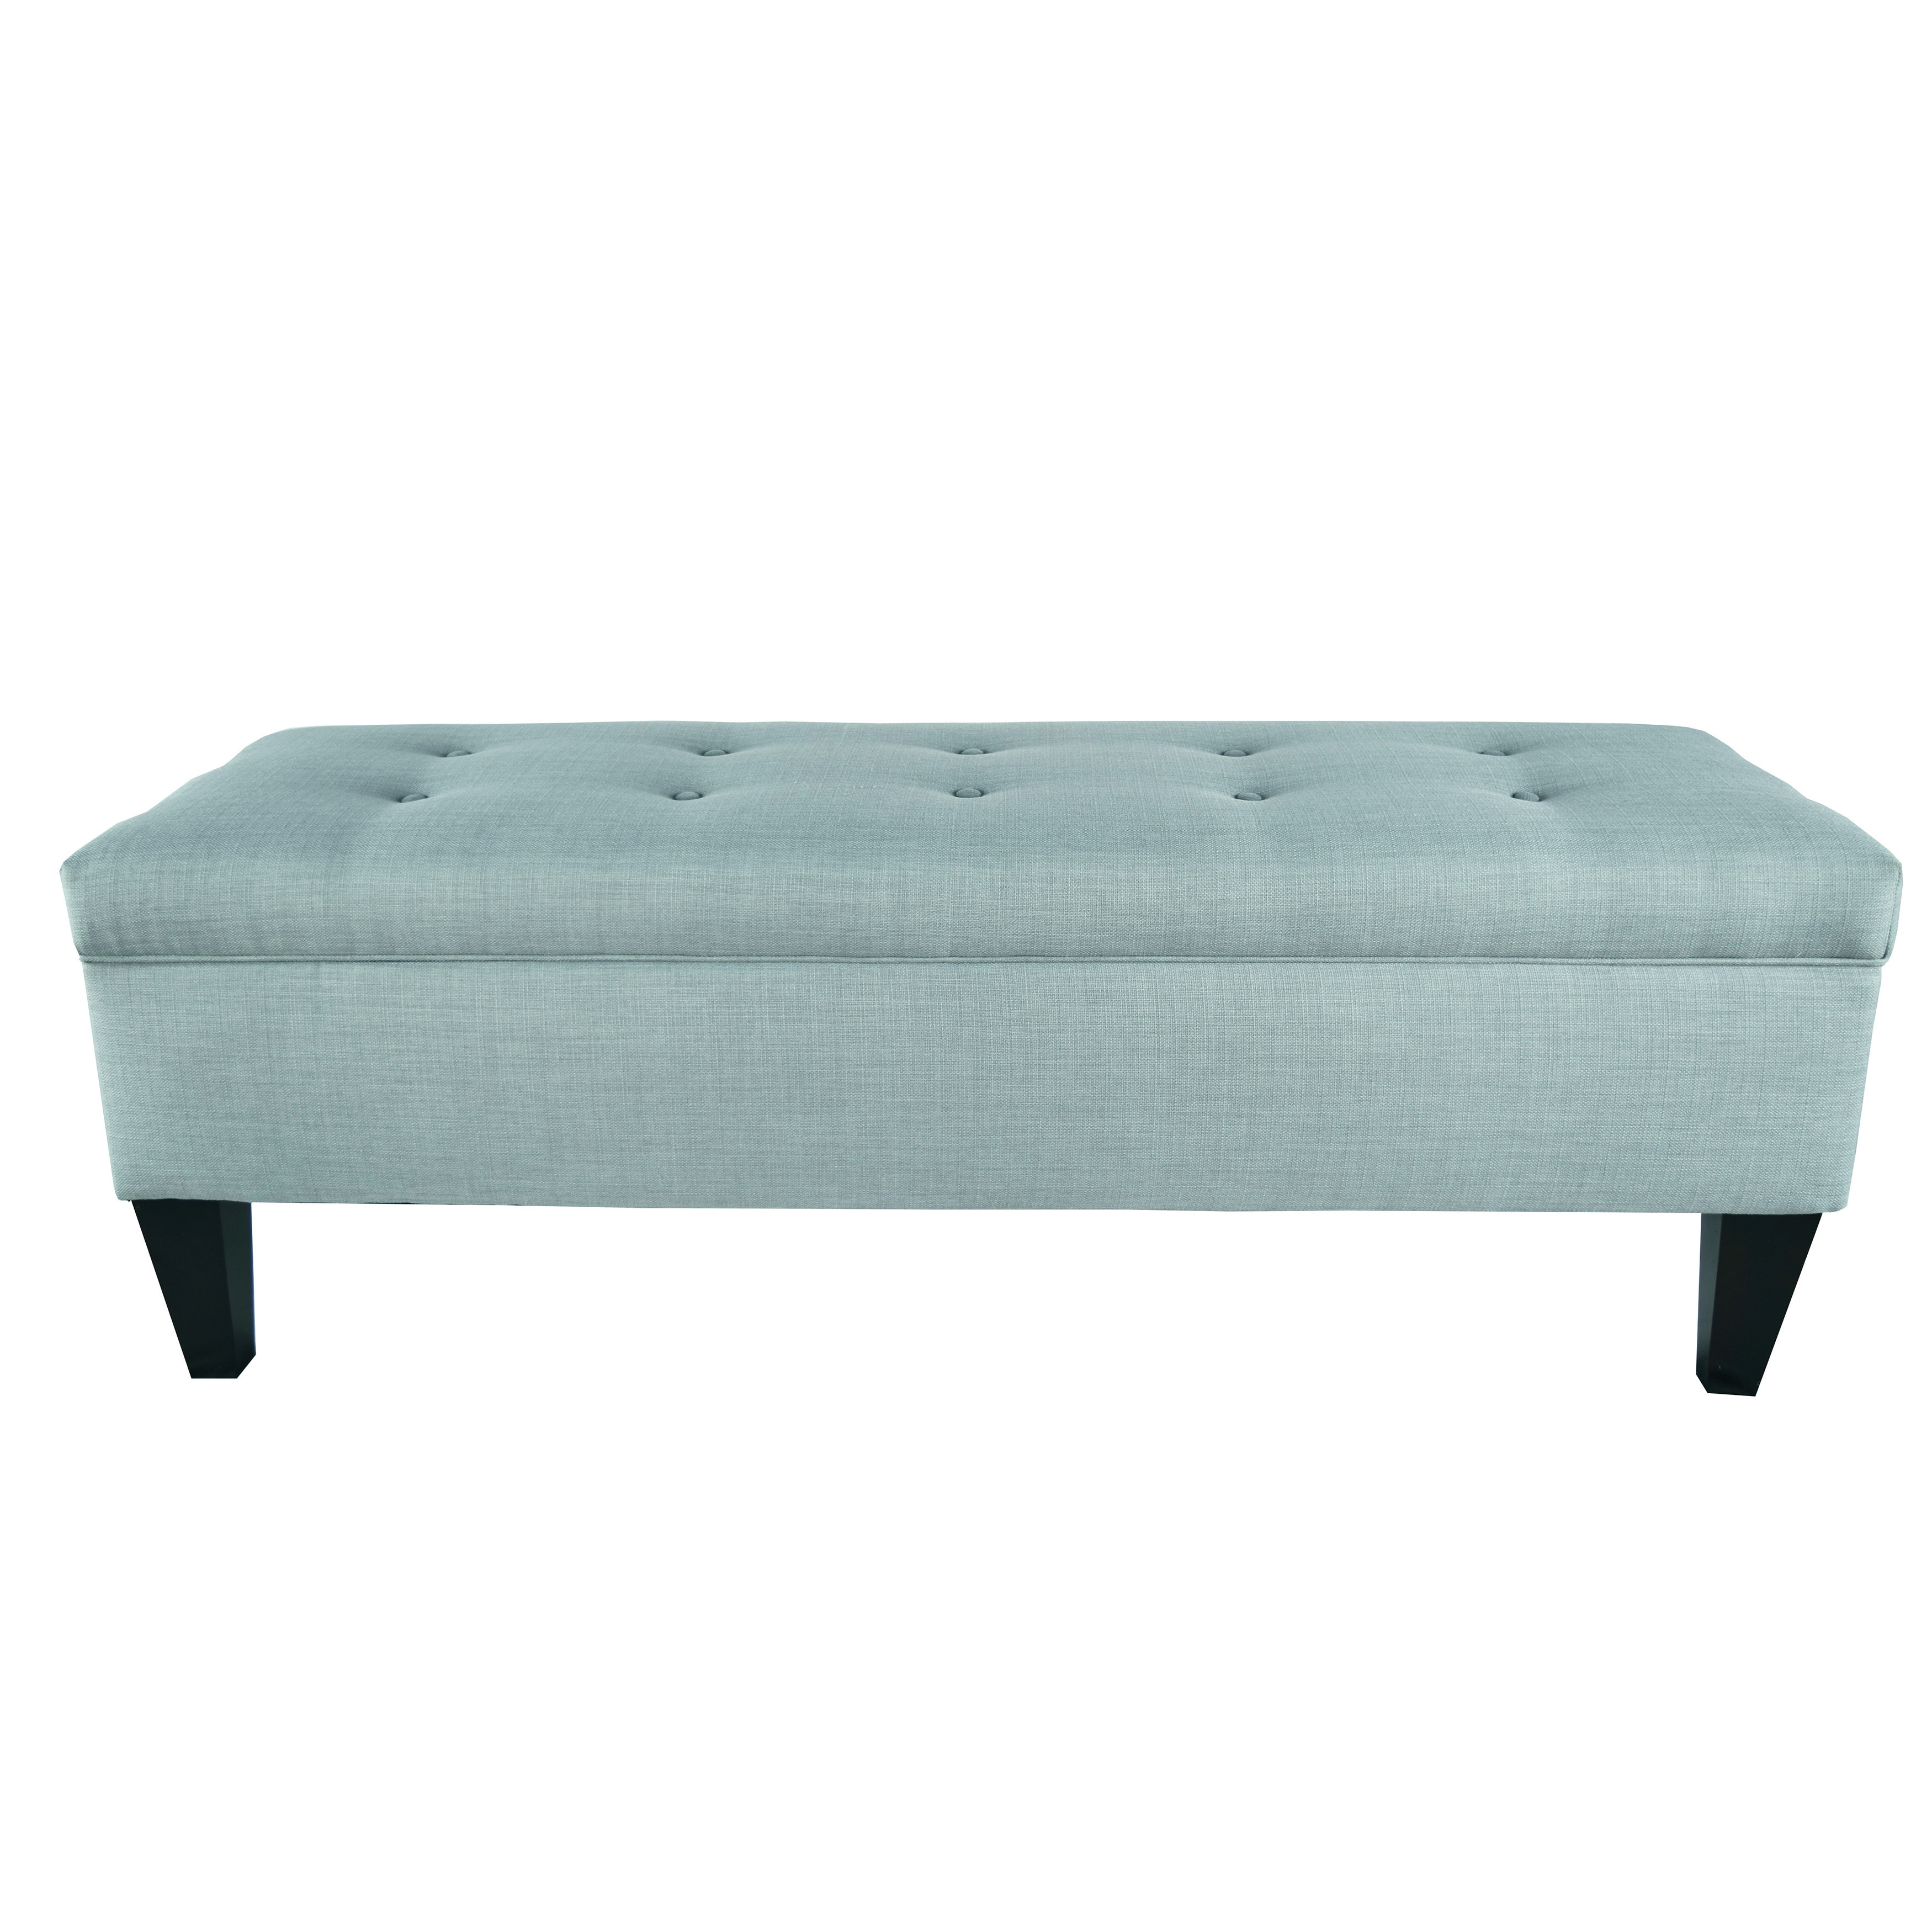 Brooke Button Tufted Long Storage Bench Ottoman On Sale Overstock 10359438